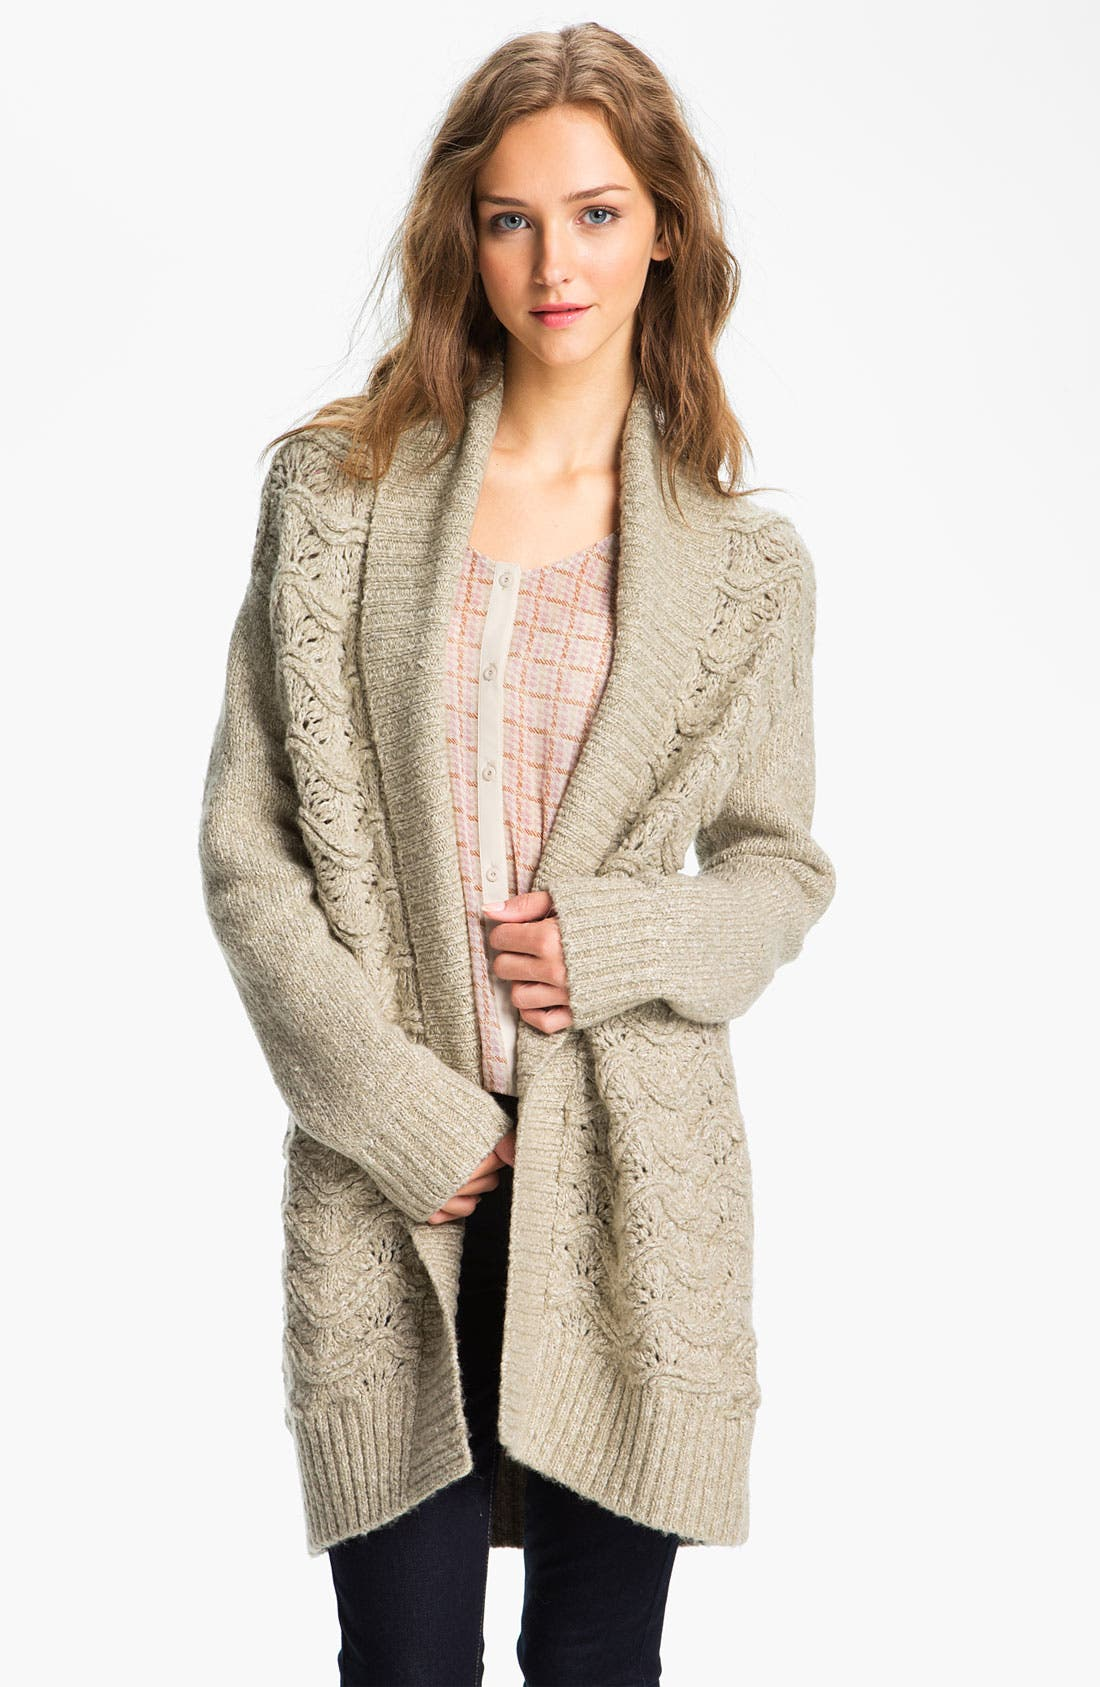 Scallop Knit Oversized Cardigan,                             Main thumbnail 1, color,                             200